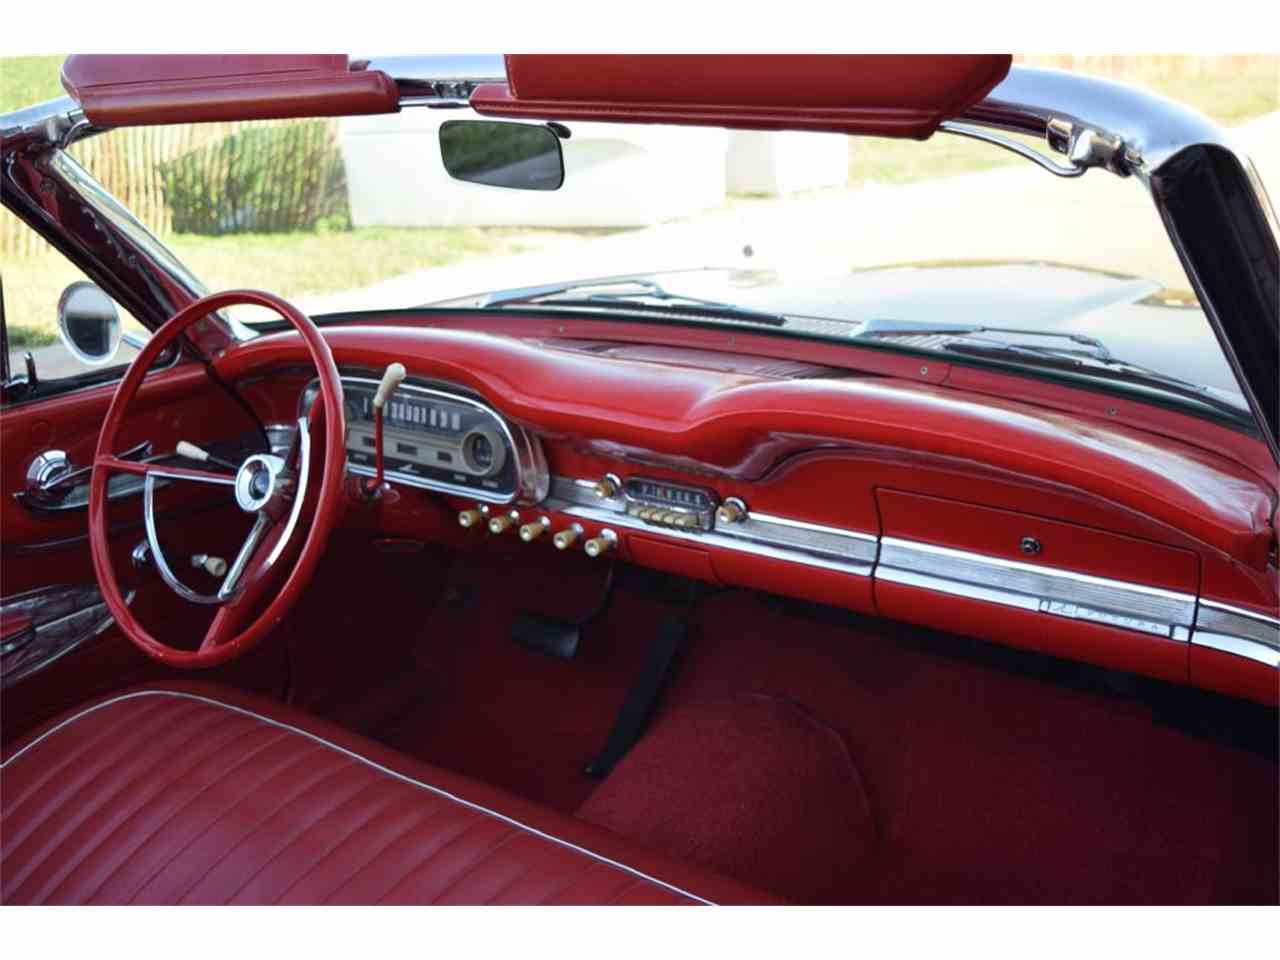 Large Picture of Classic 1963 Ford Falcon Futura located in Iowa Offered by Jensen Dealerships - LUN9